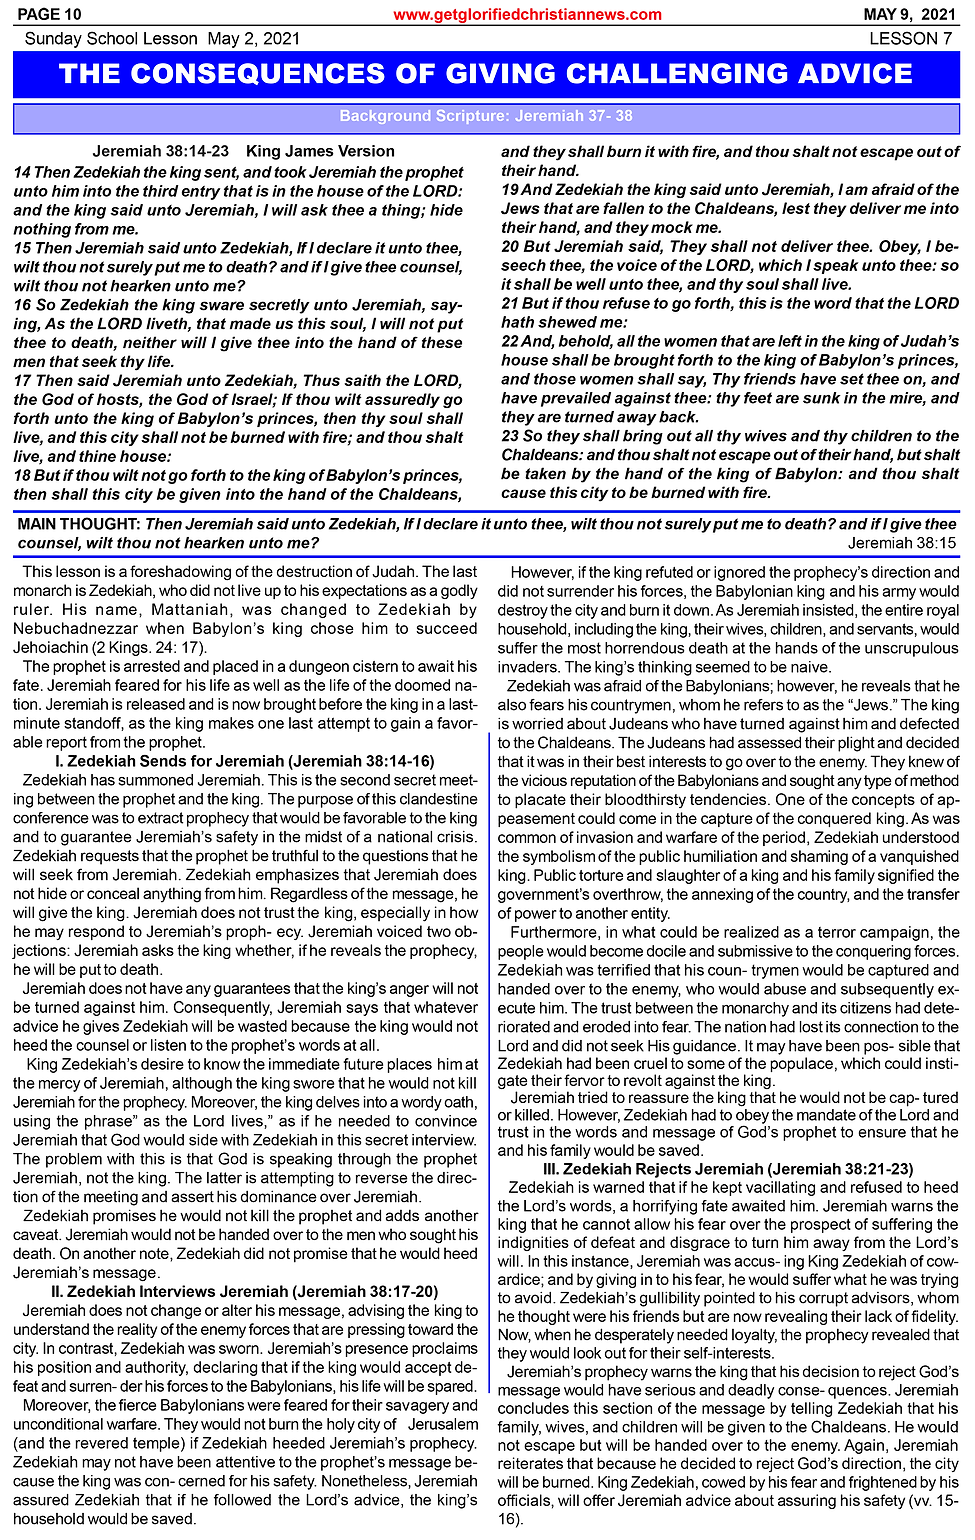 GCT 5-9-21 Page 10.png